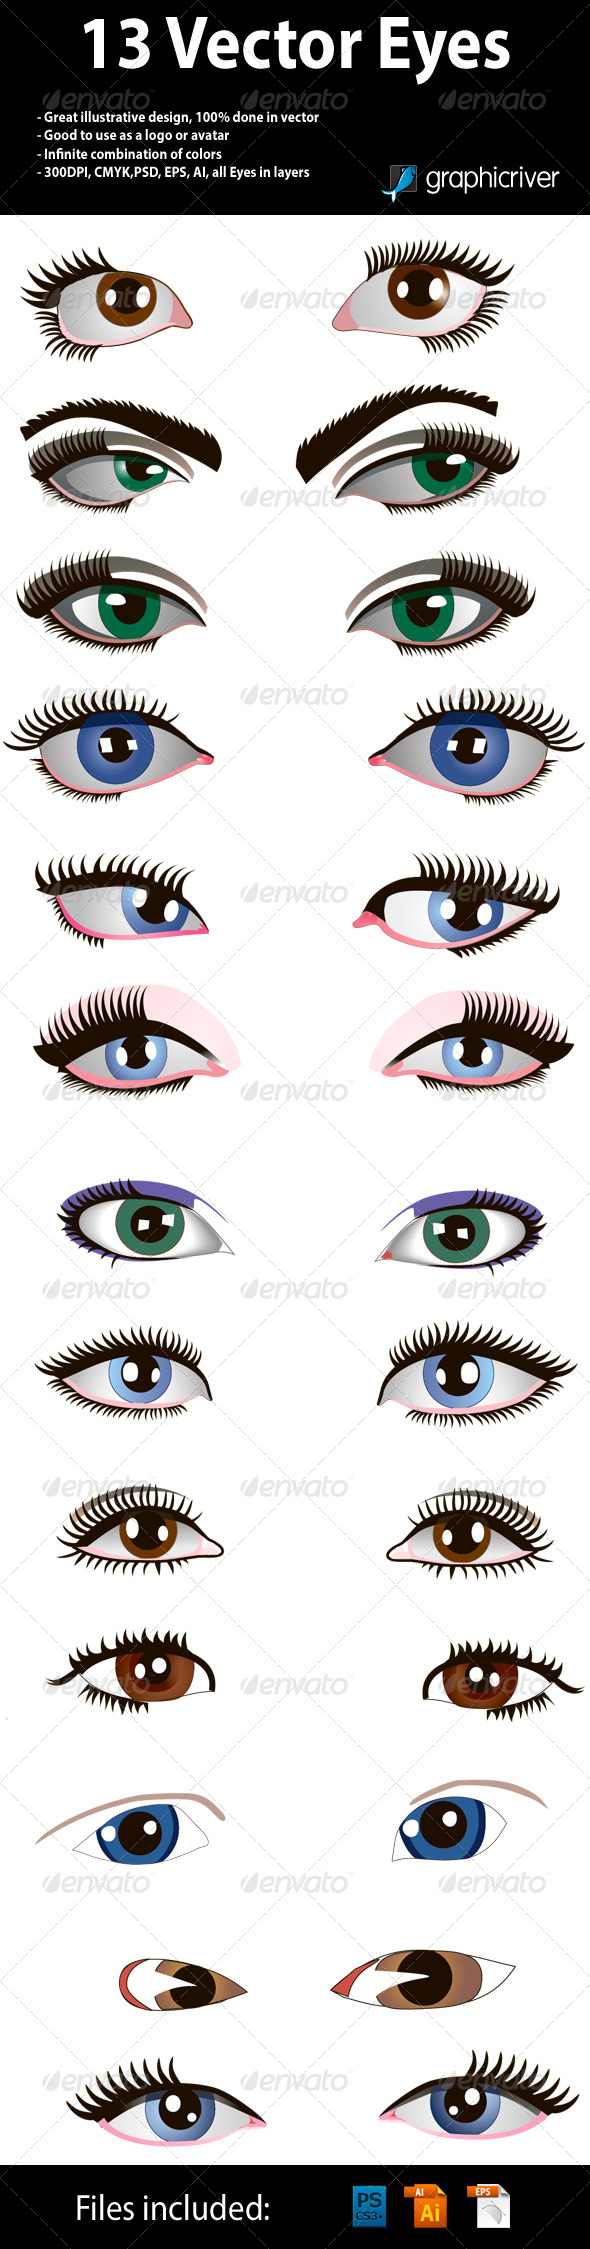 GraphicRiver 13 Vector Eyes 4495887